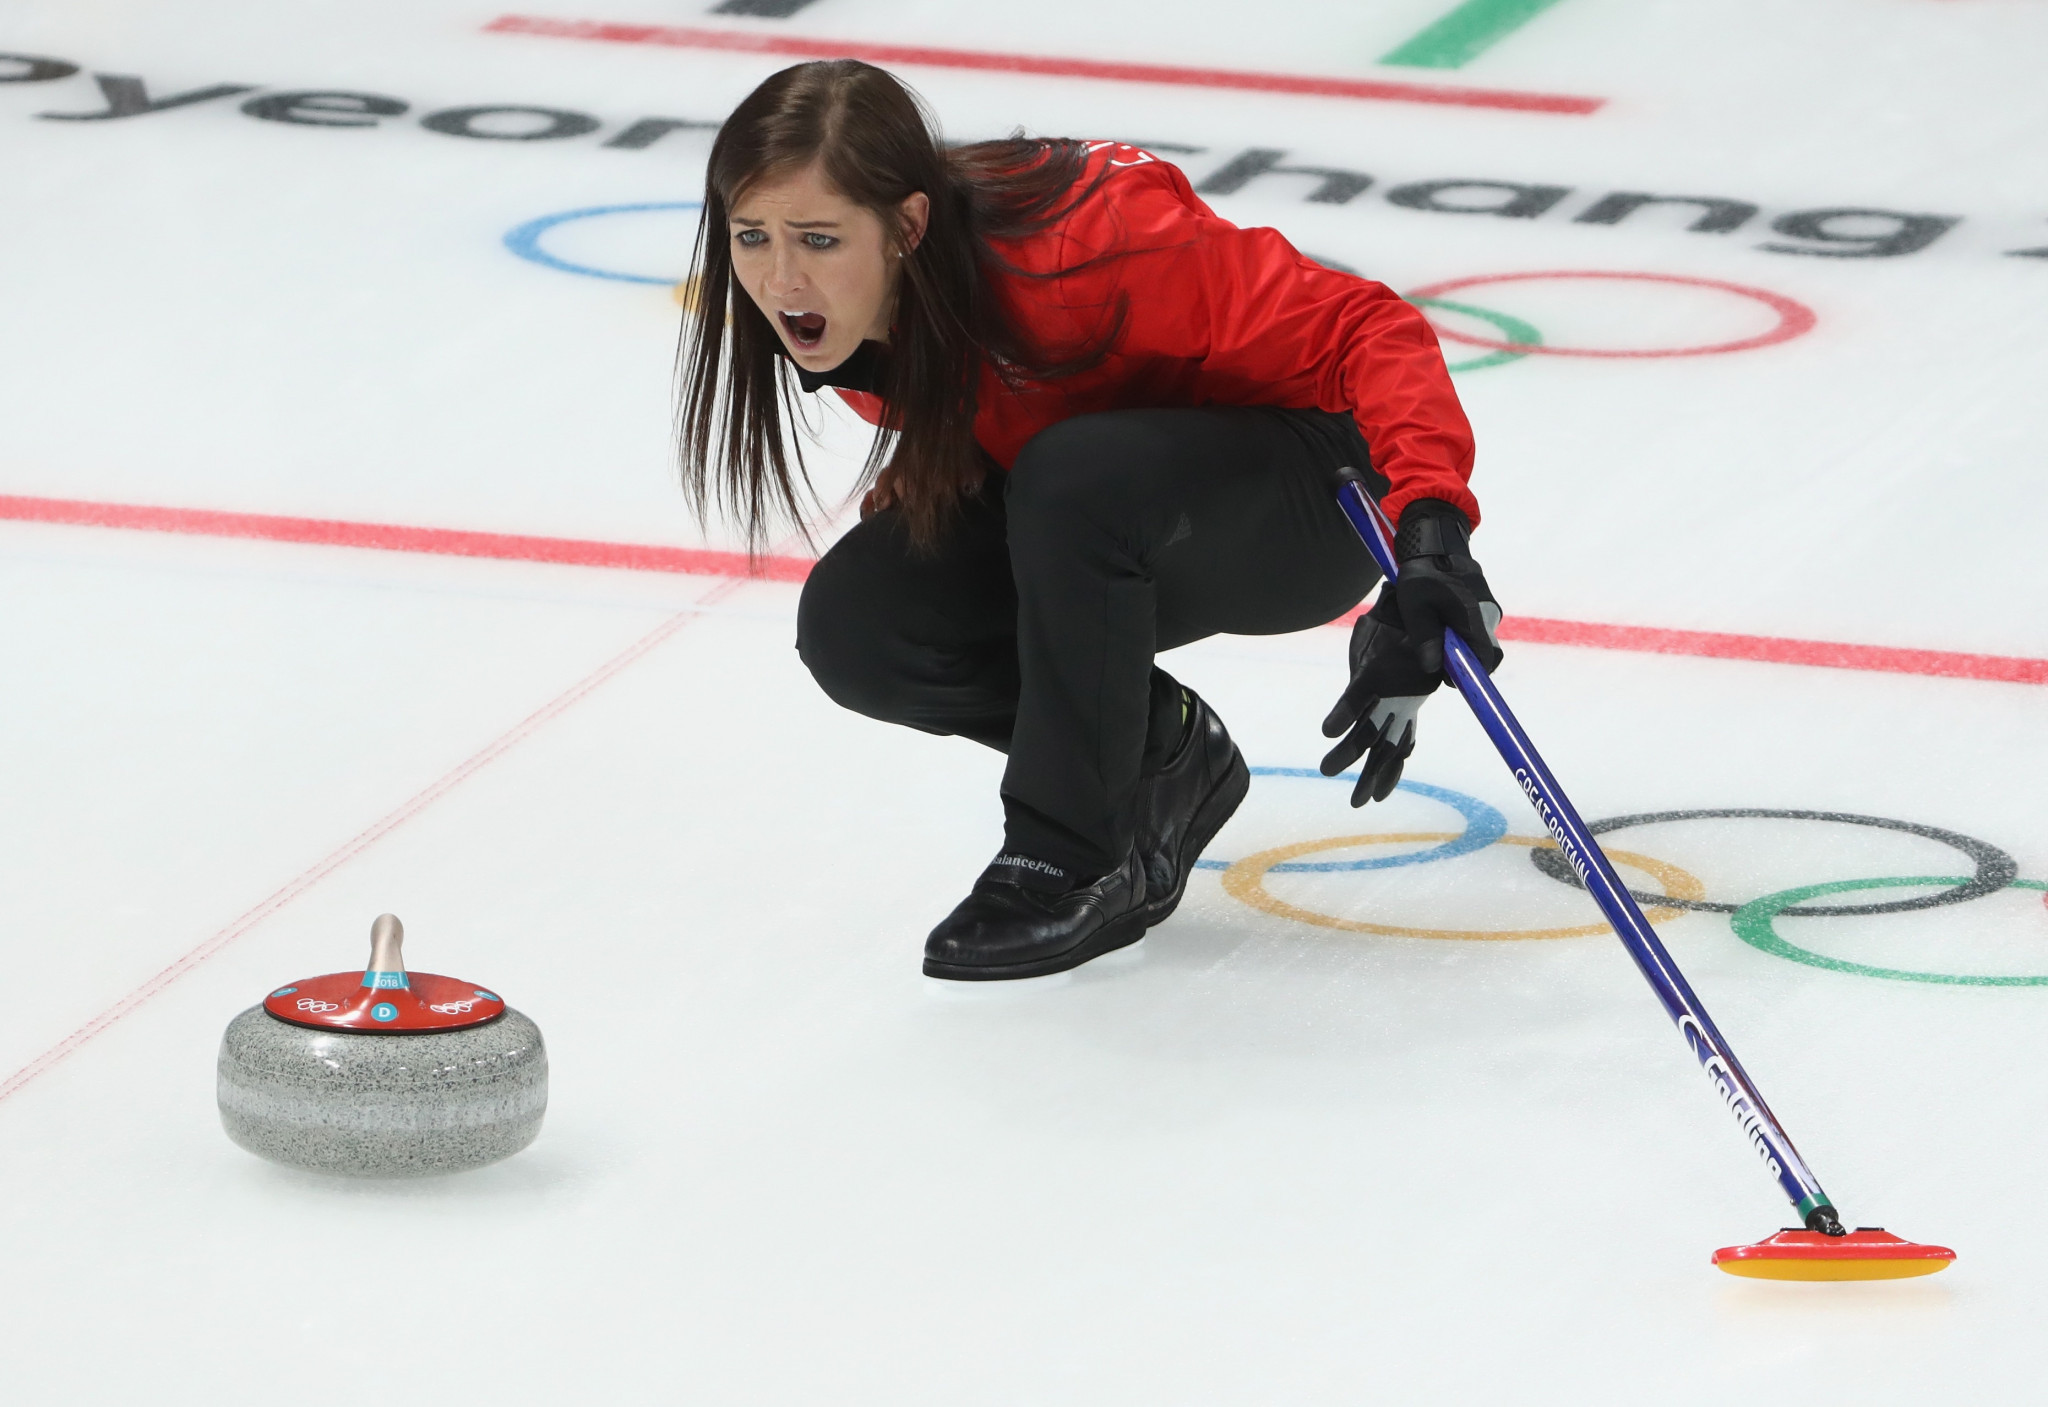 Muirhead criticises venue change for Scottish Curling Championships